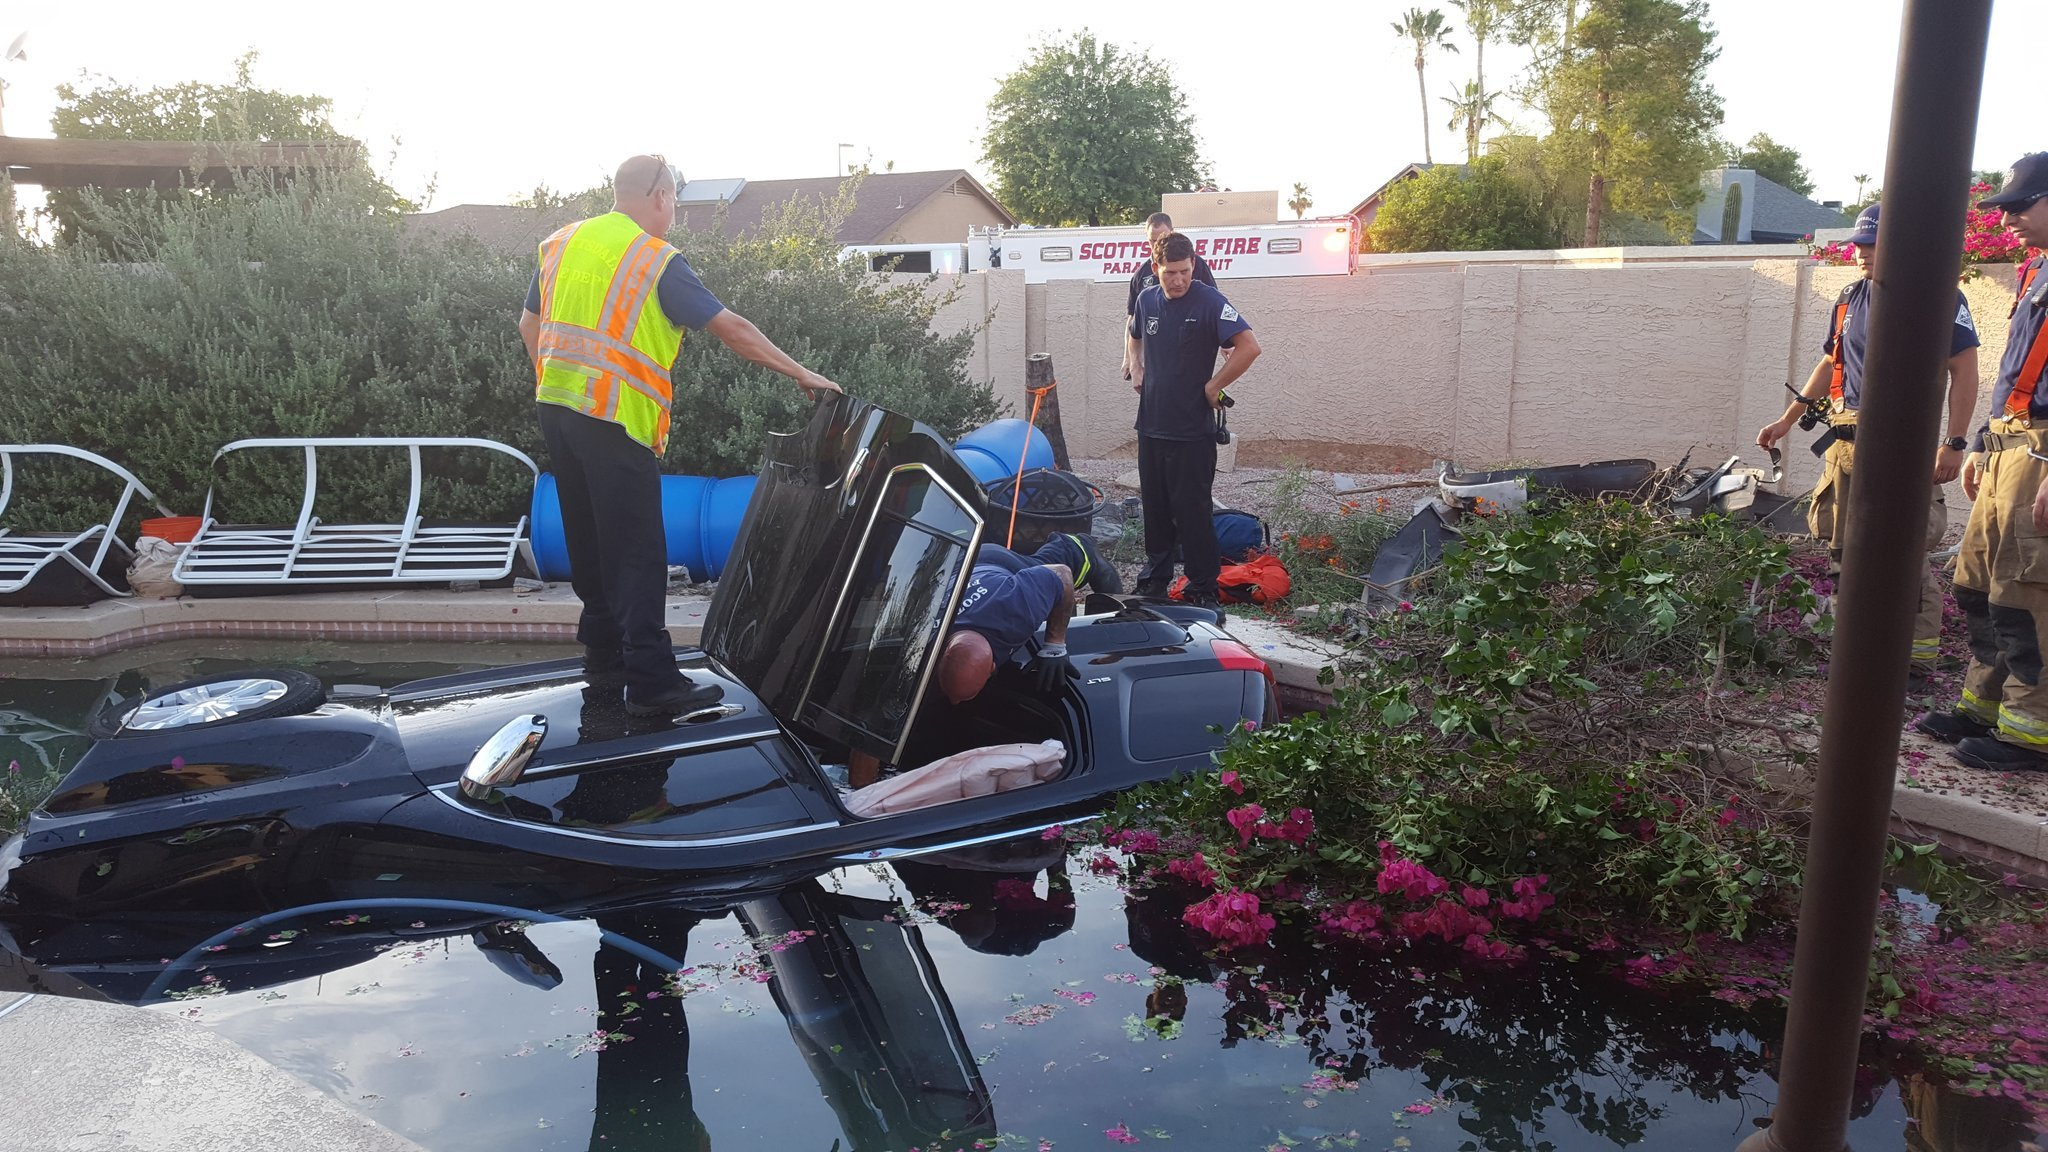 A man was rescued after crashing his SUV into a backyard pool in Scottsdale. (Source: Scottsdale Police Department)